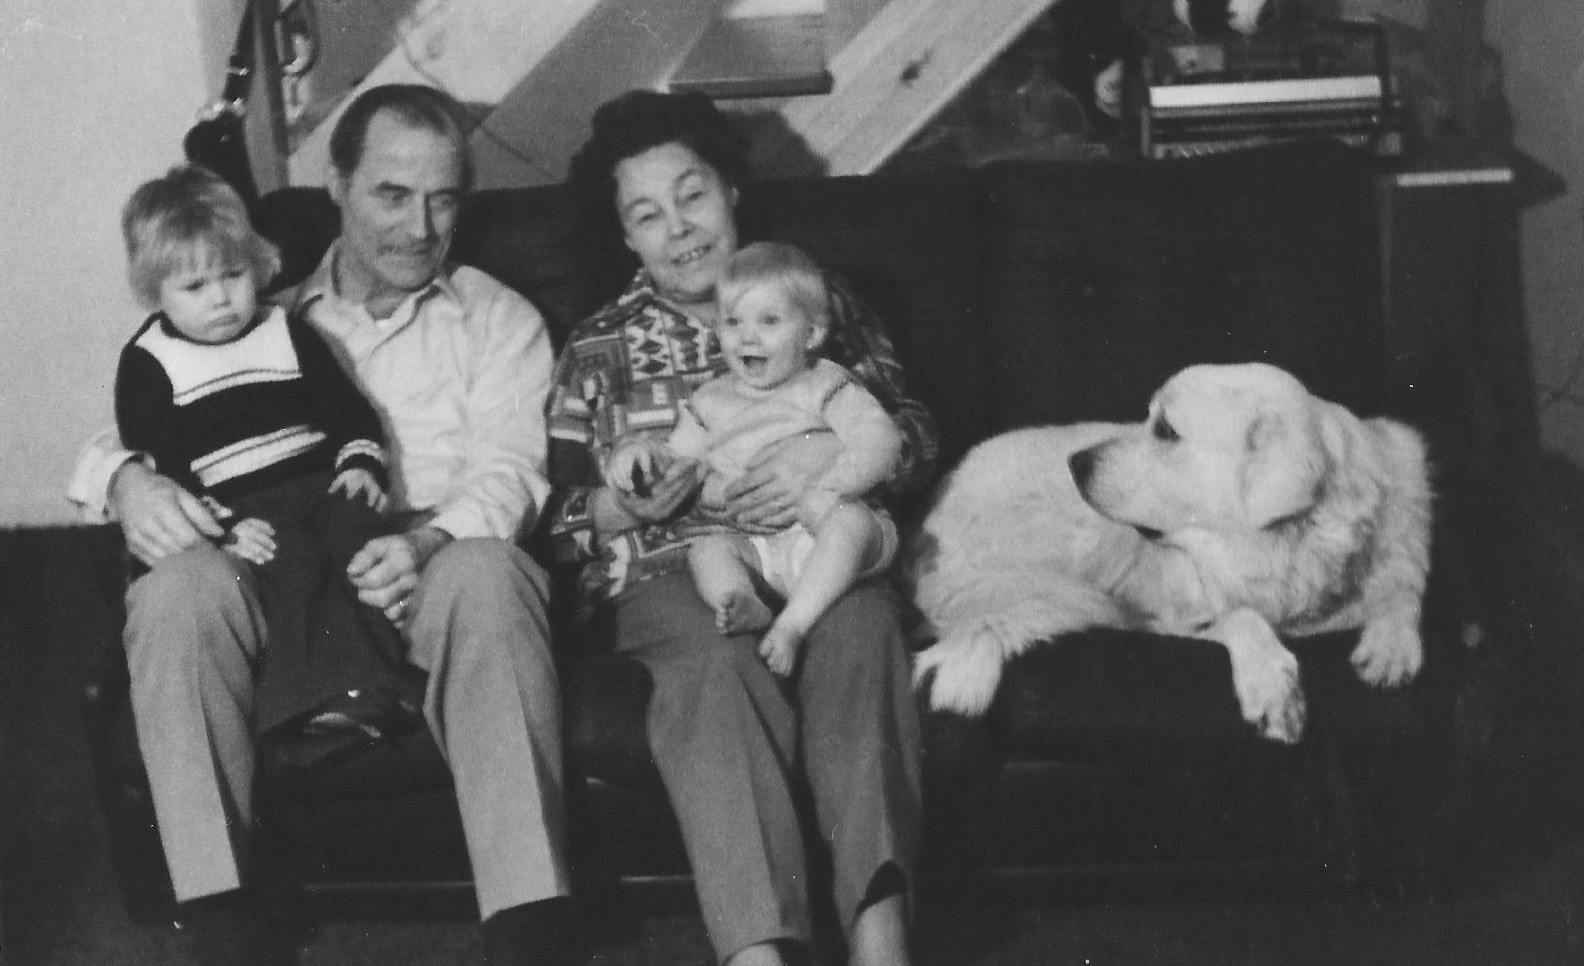 Scott, Florence's husband Ernest, Florence, Scott's sister Kellie and Sheba the dog